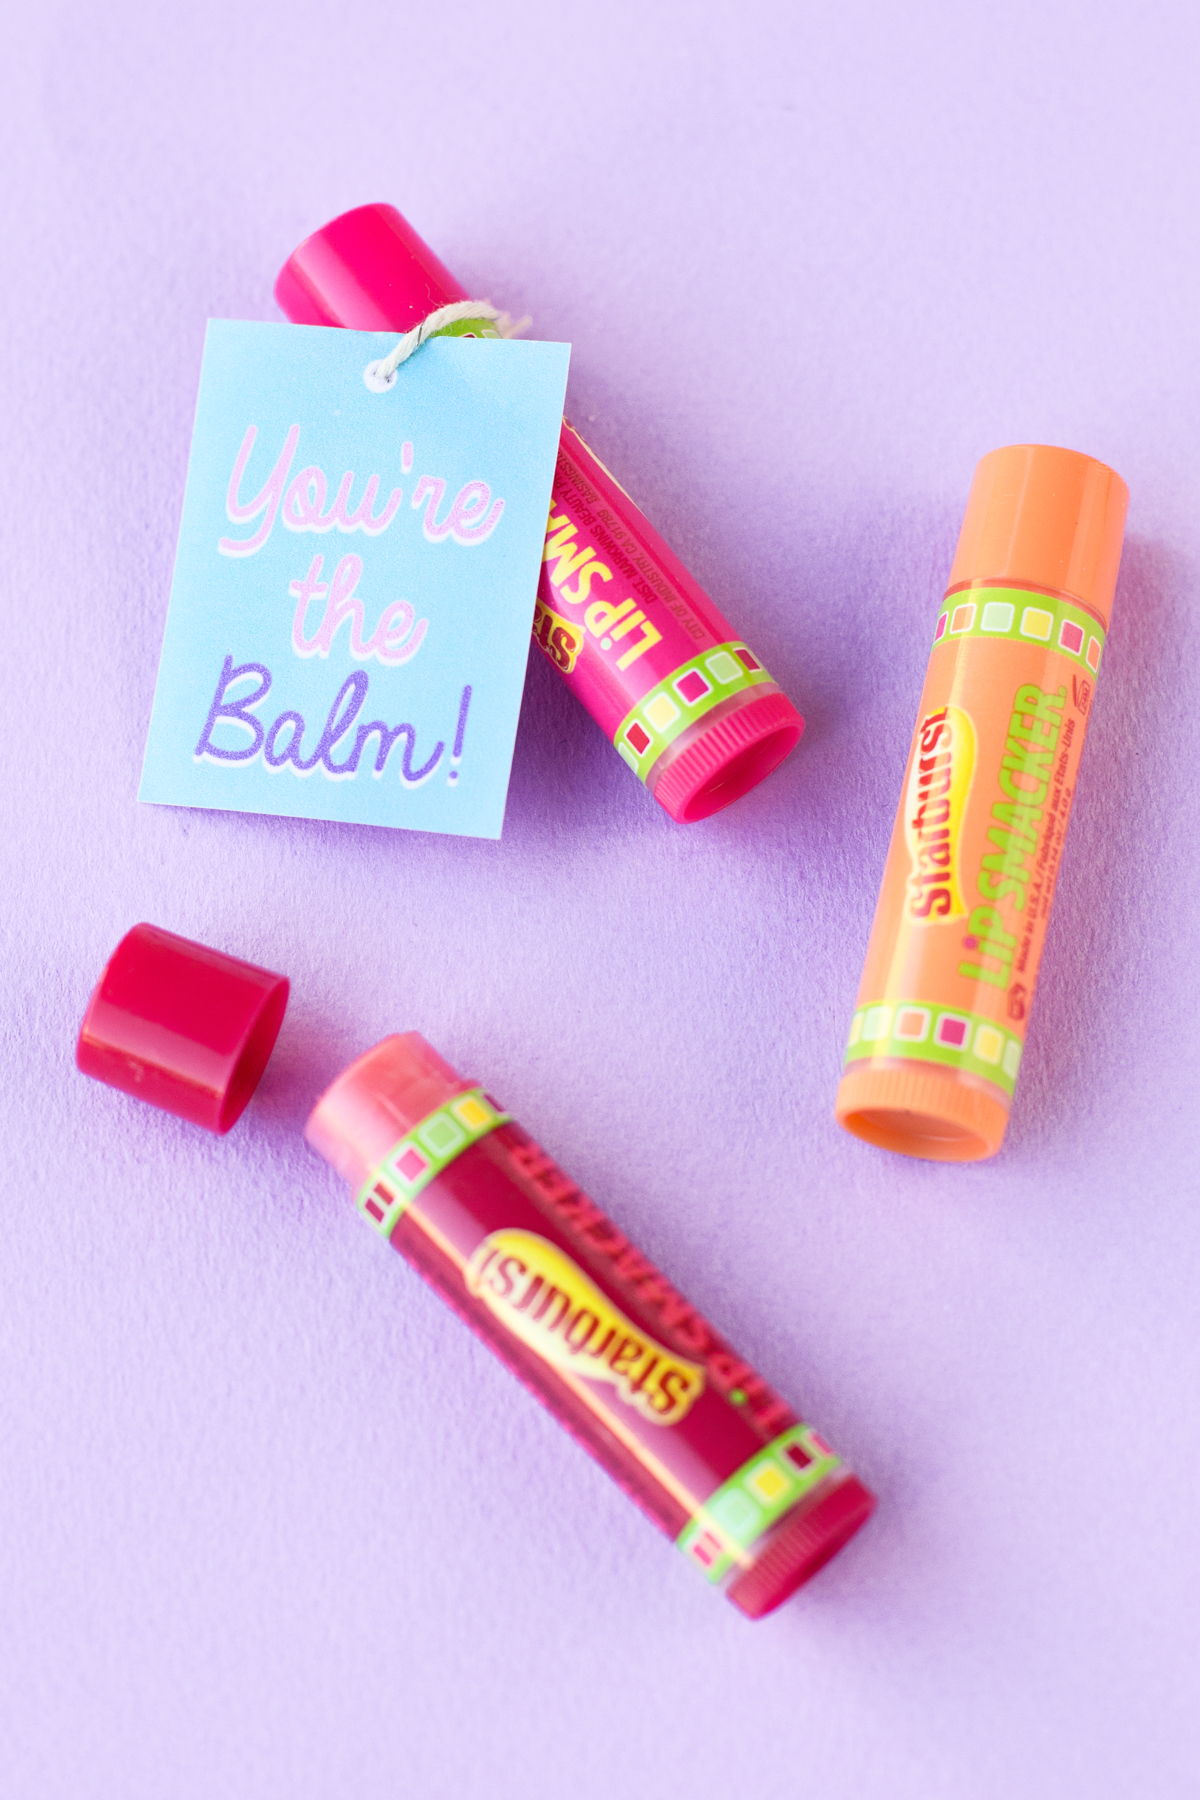 image regarding Starburst Valentine Printable referred to as Youre the Balm 5 Instant Totally free Printable Valentines